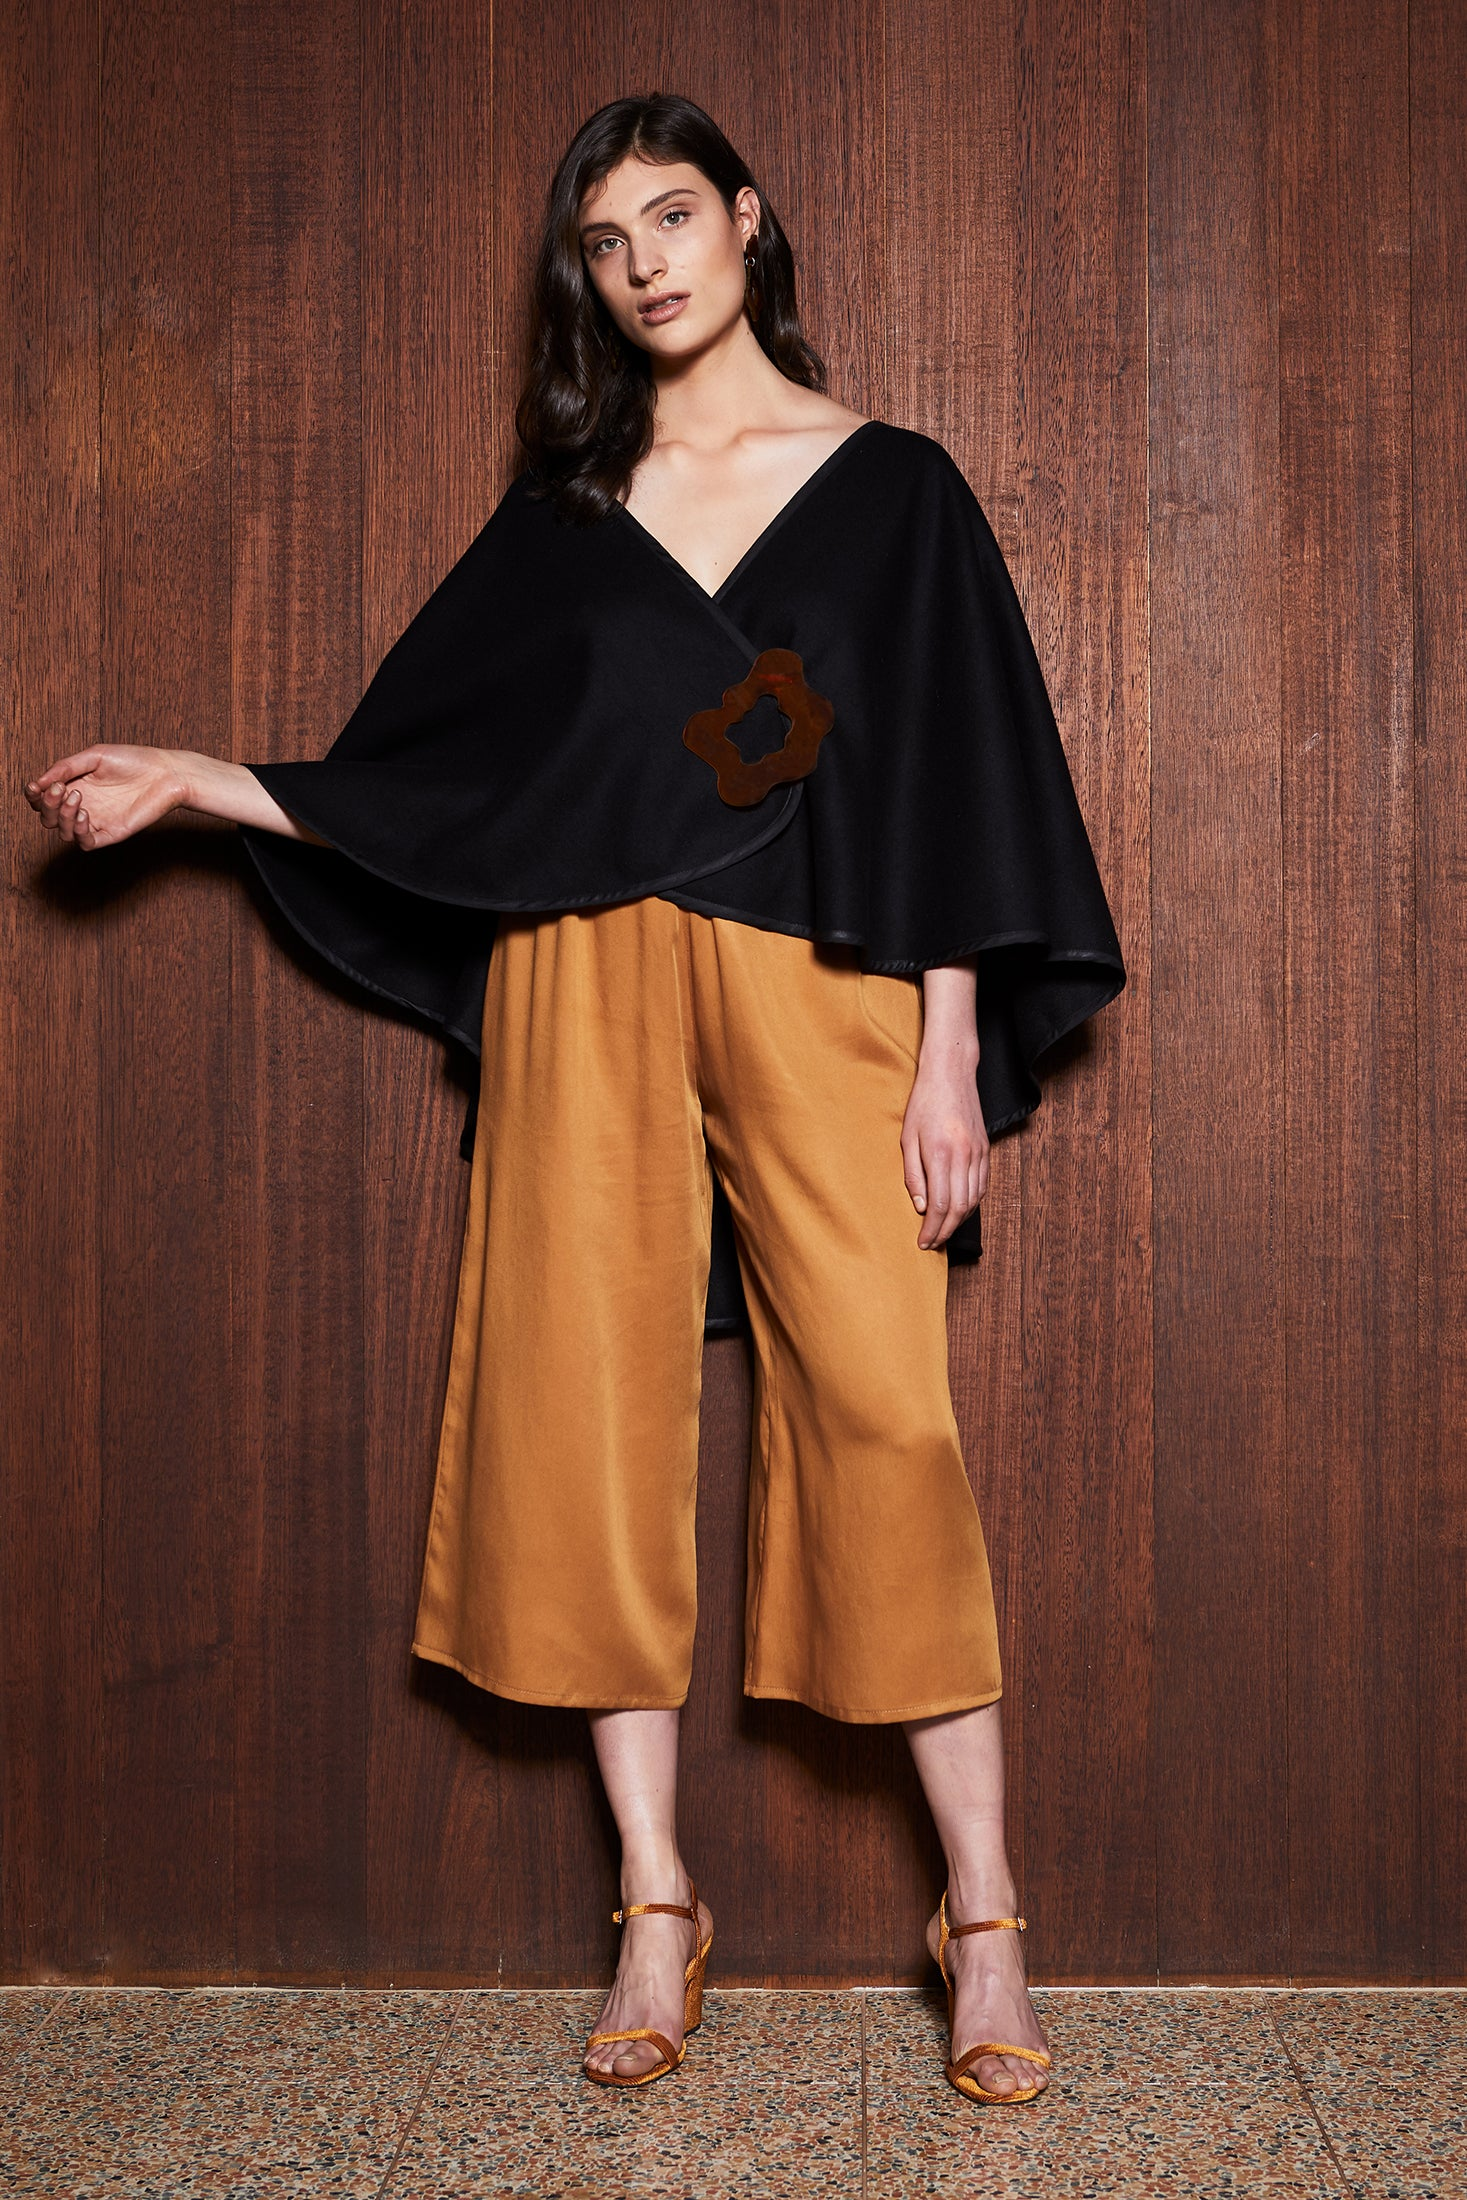 Women's Clothing in Melbourne Australia Shade Cape Black Poncho Wool Shawl